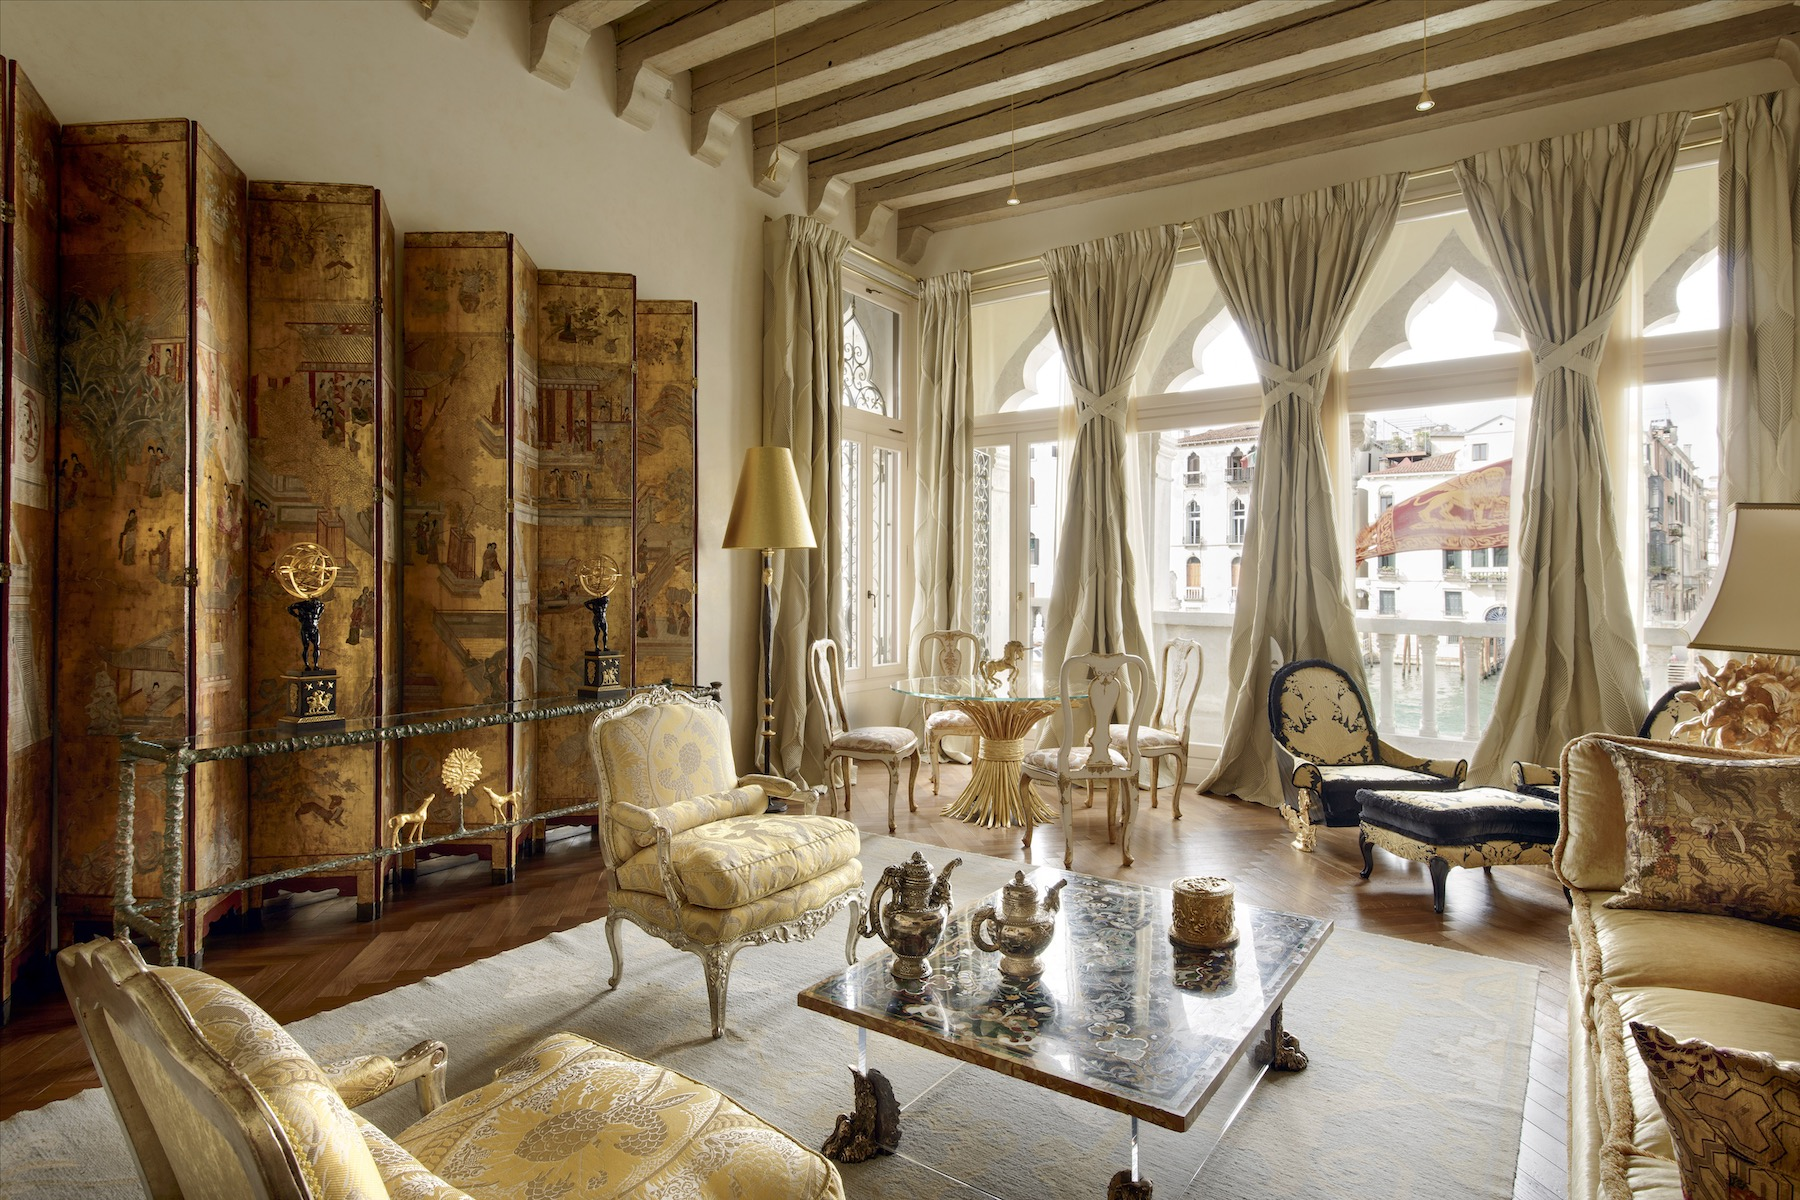 Apartment for Sale at Orio Grand Canal Dorsoduro Venice, Italy